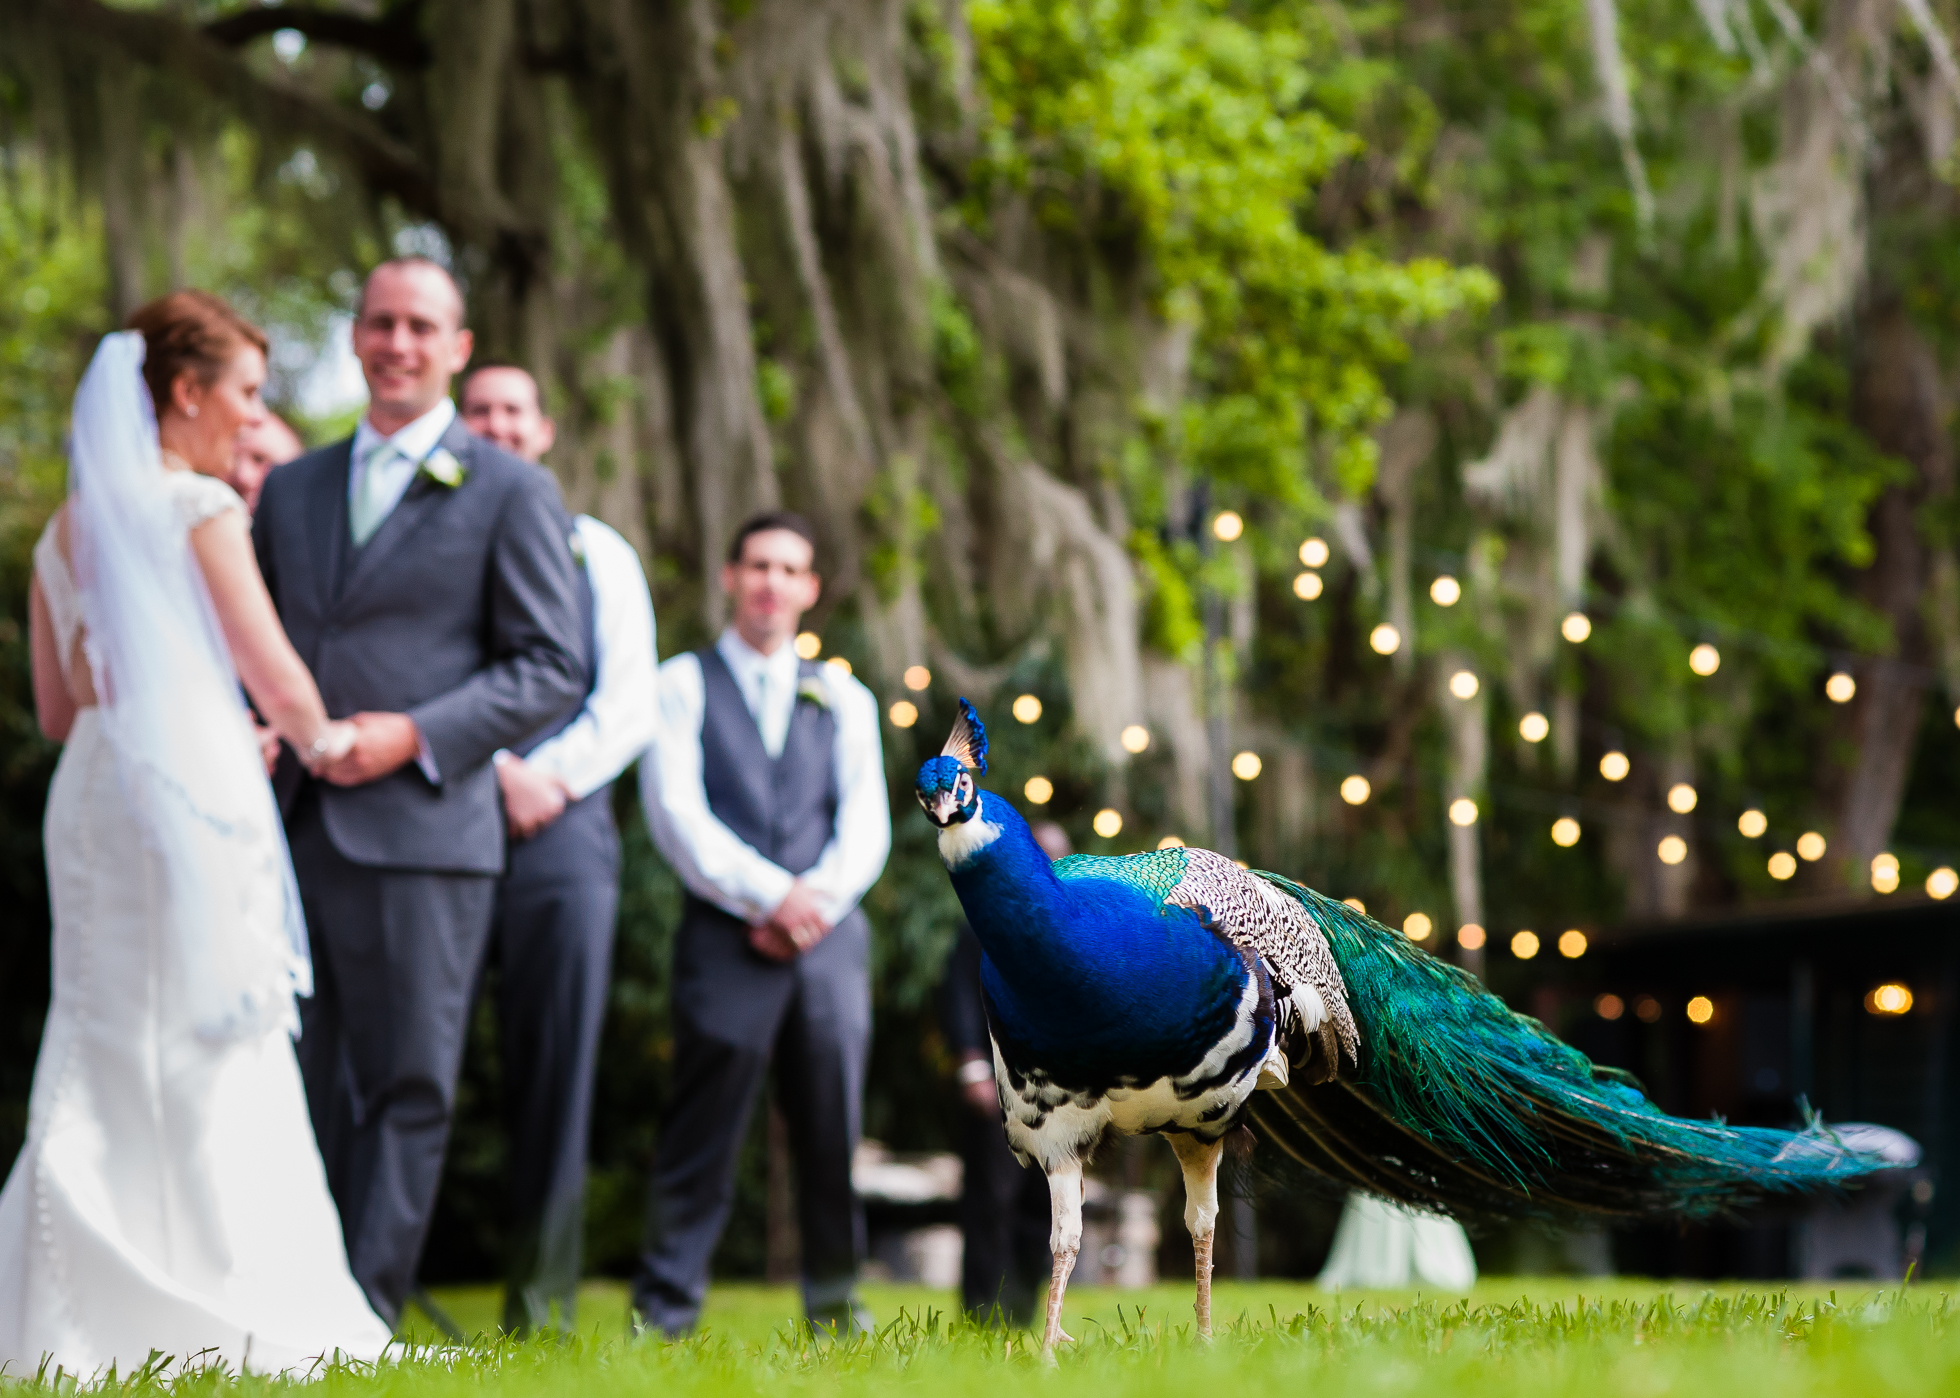 gorgeous peacock parades during a wedding ceremony at Magnolia Plantation in Charleston